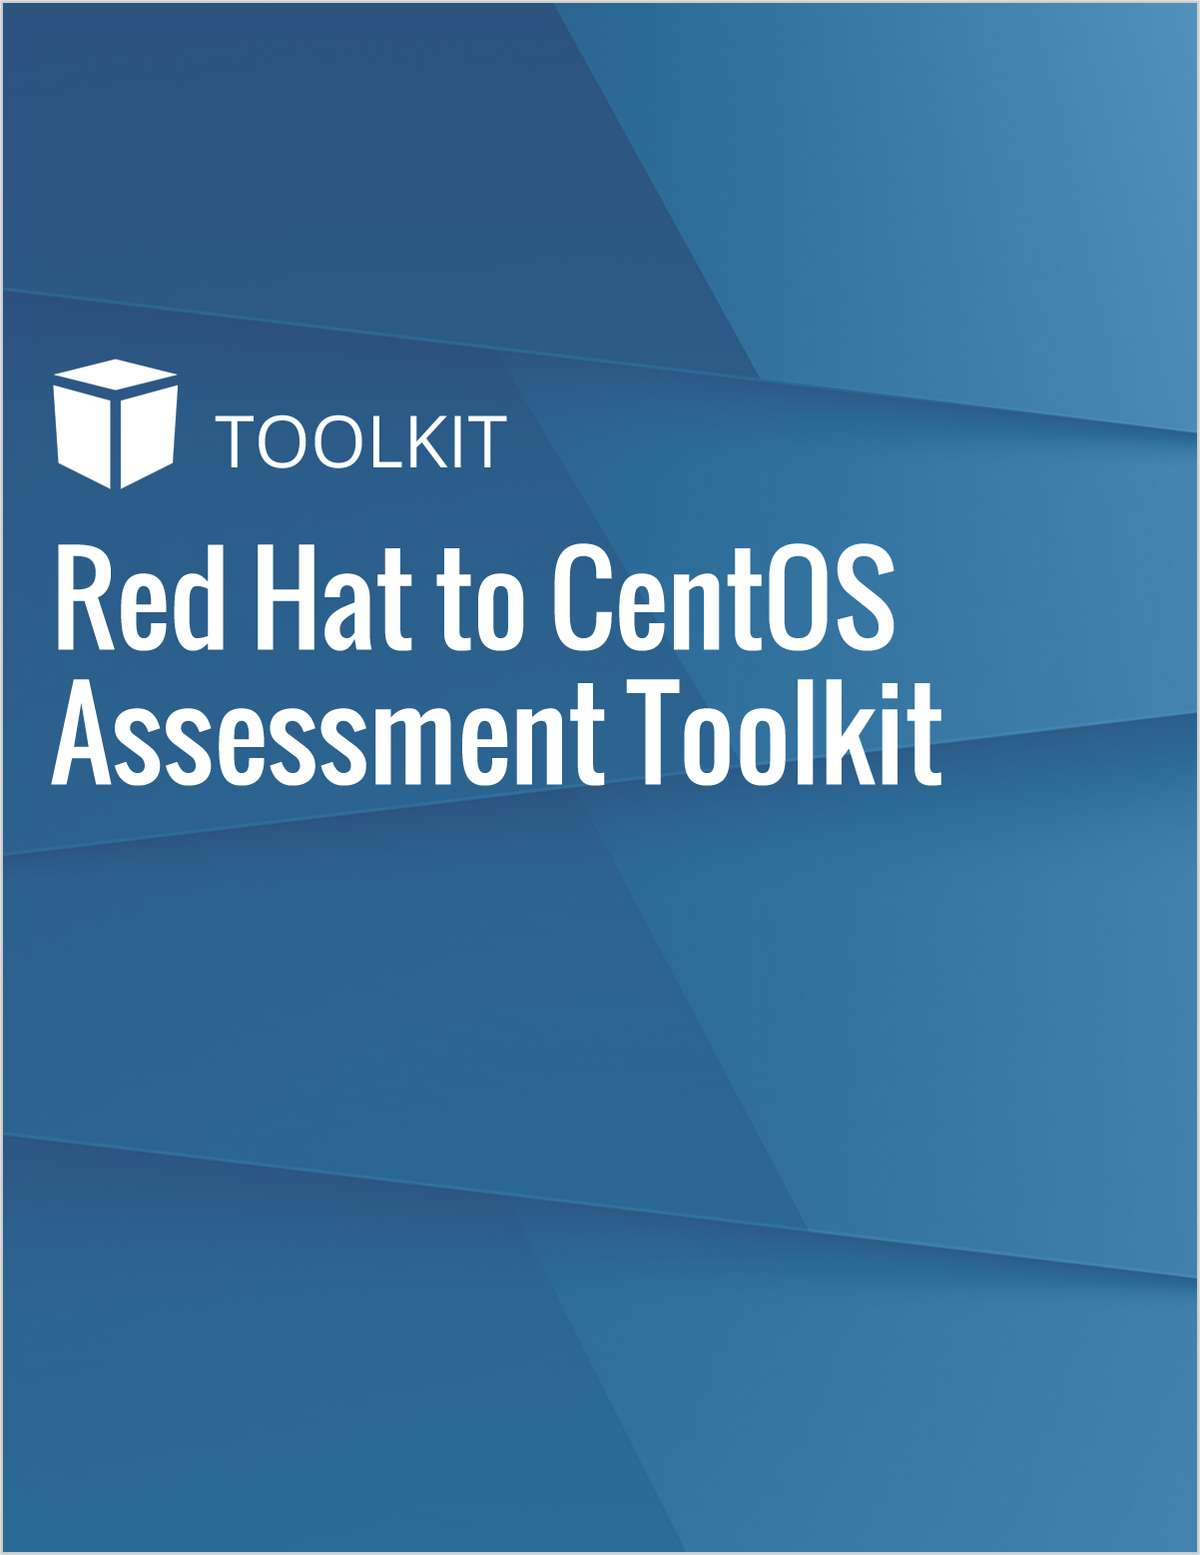 Red Hat to CentOS Assessment Toolkit